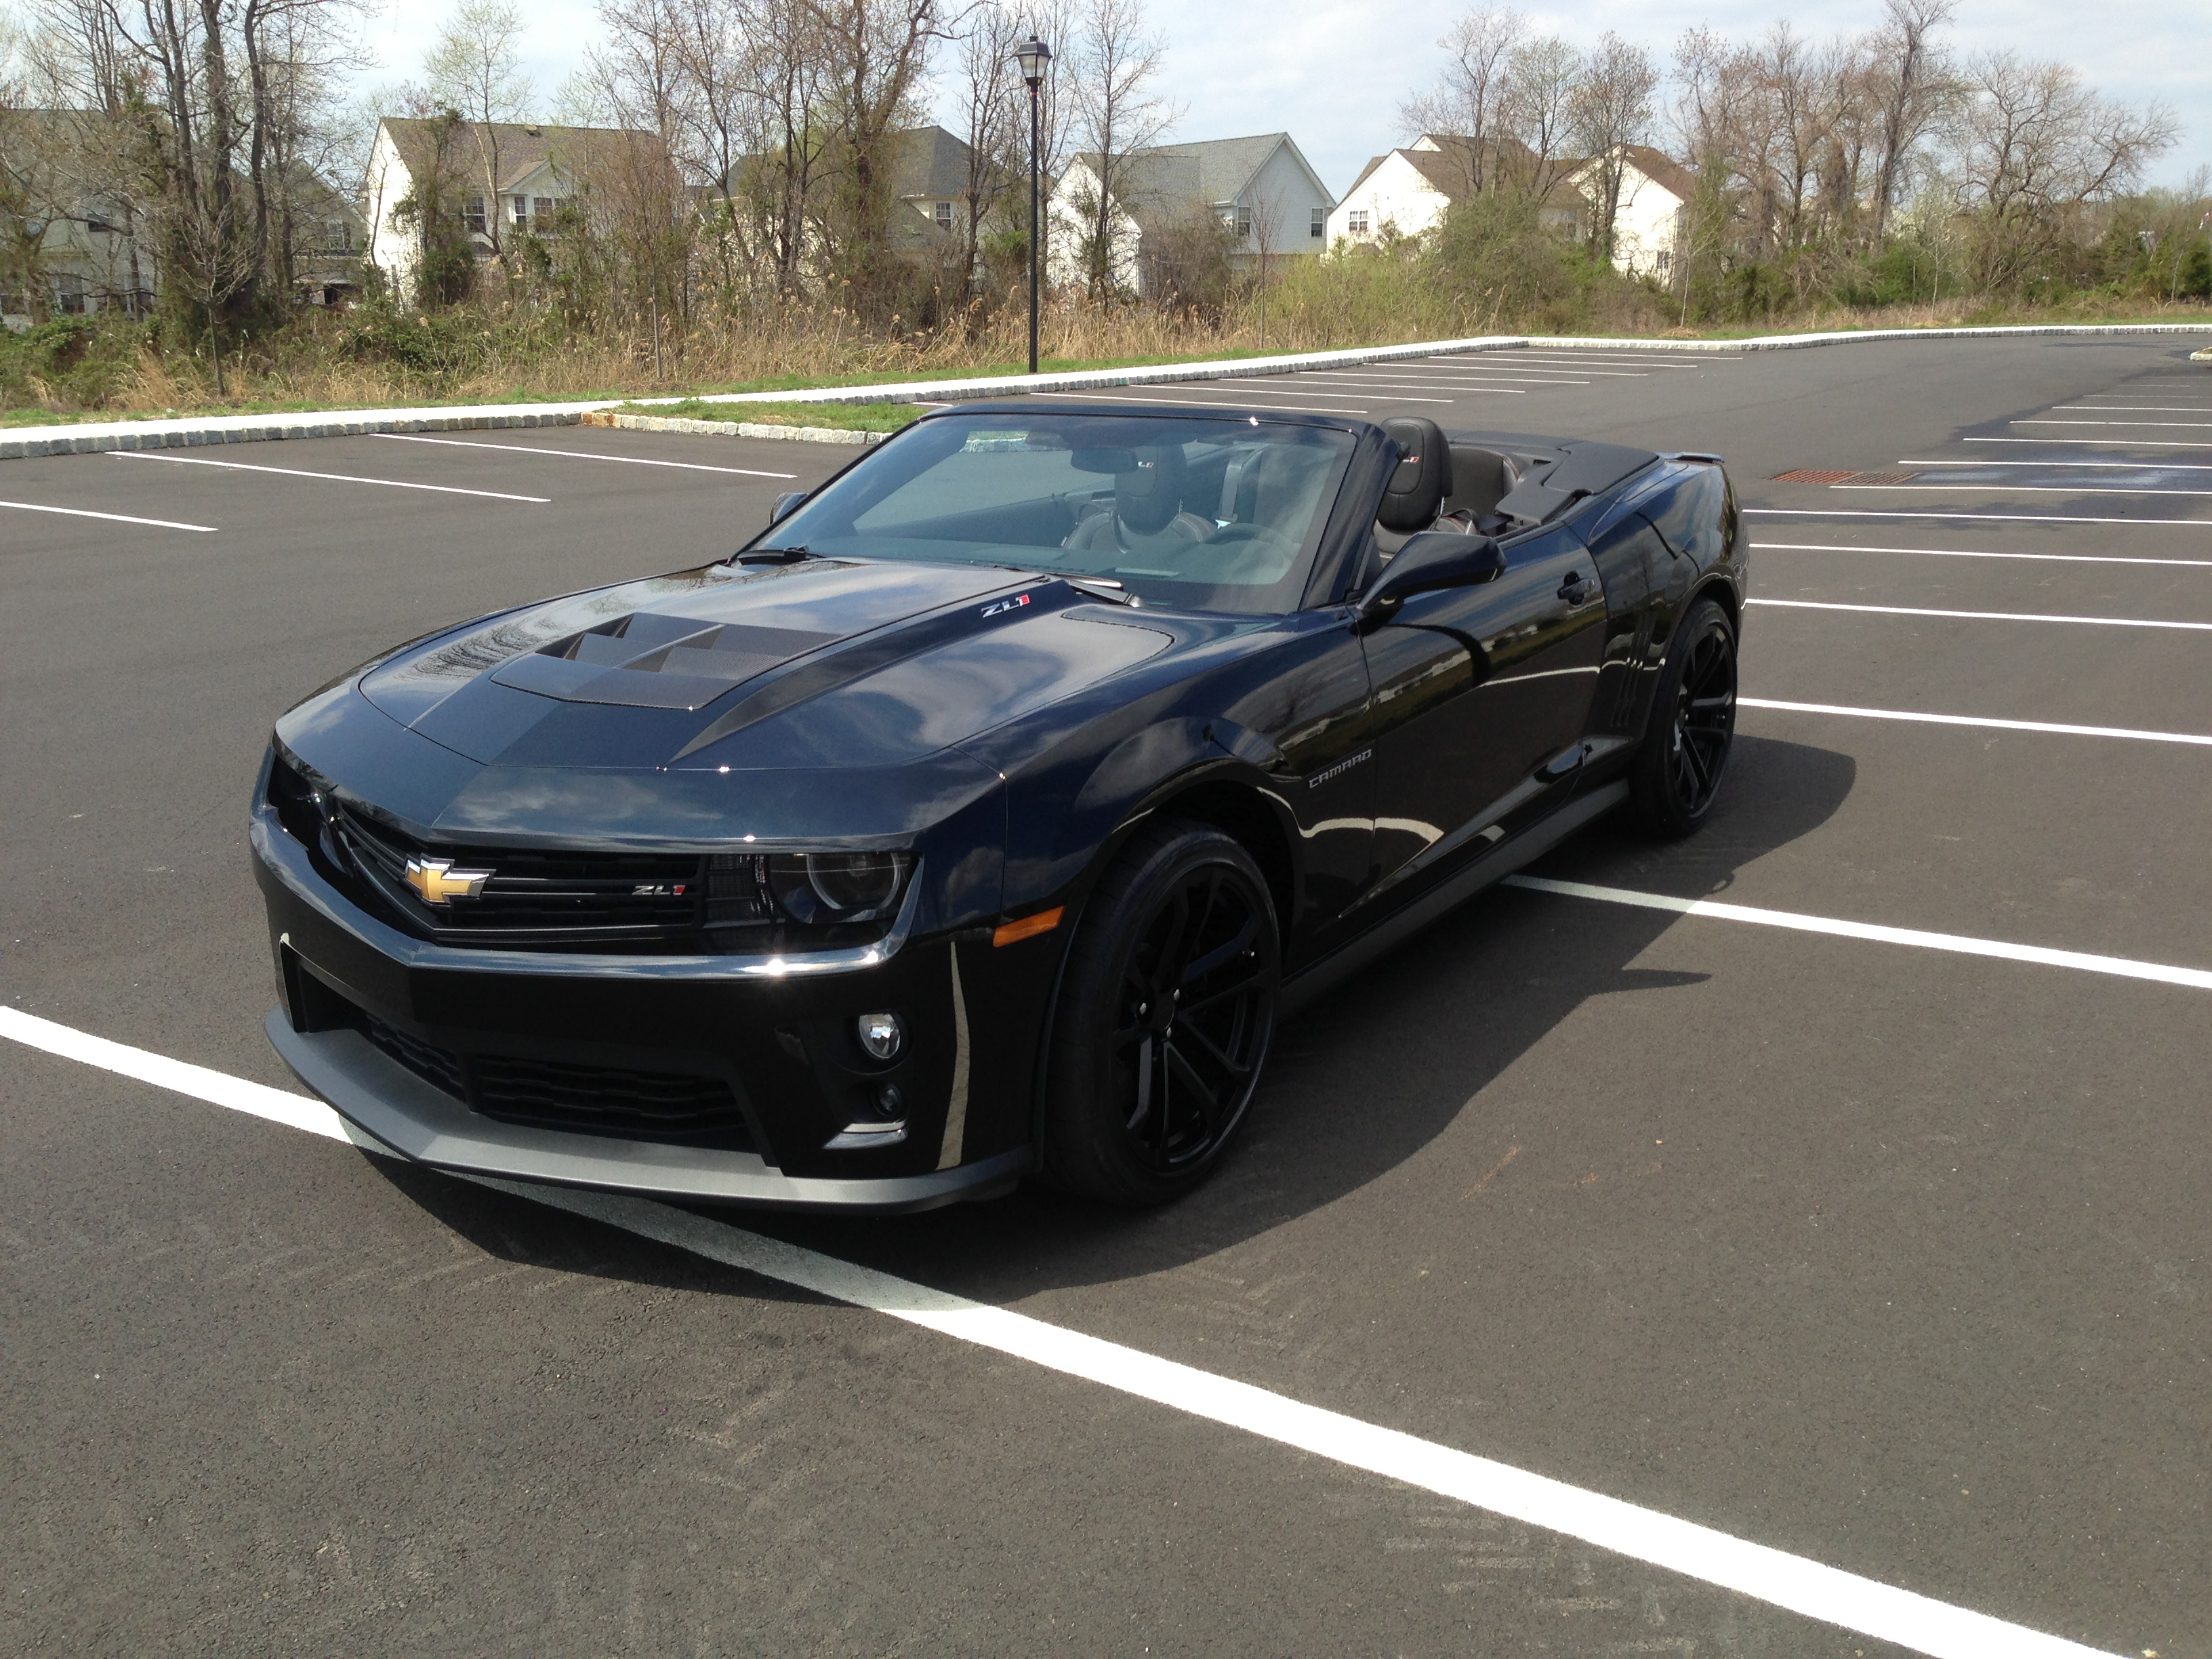 4k zl1 pic camaro5 chevy camaro forum camaro zl1 ss and v6 forums. Black Bedroom Furniture Sets. Home Design Ideas